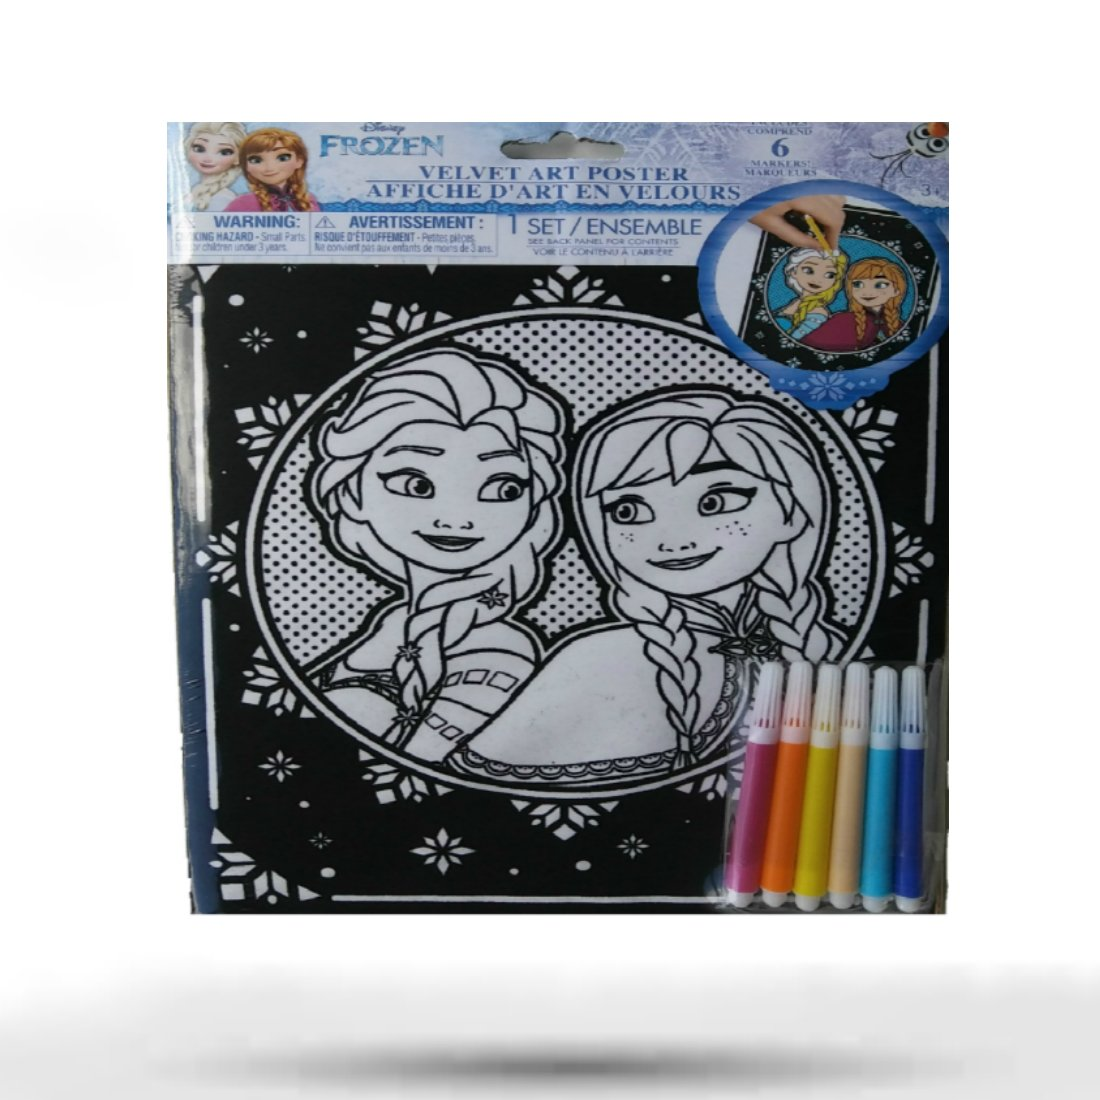 Disney velvet coloring posters - Amazon Com Velvet Poster Art Coloring Sheets For Kids Include Marker Disney Characters Frozen Mikey Mouse And Belle Toys Games